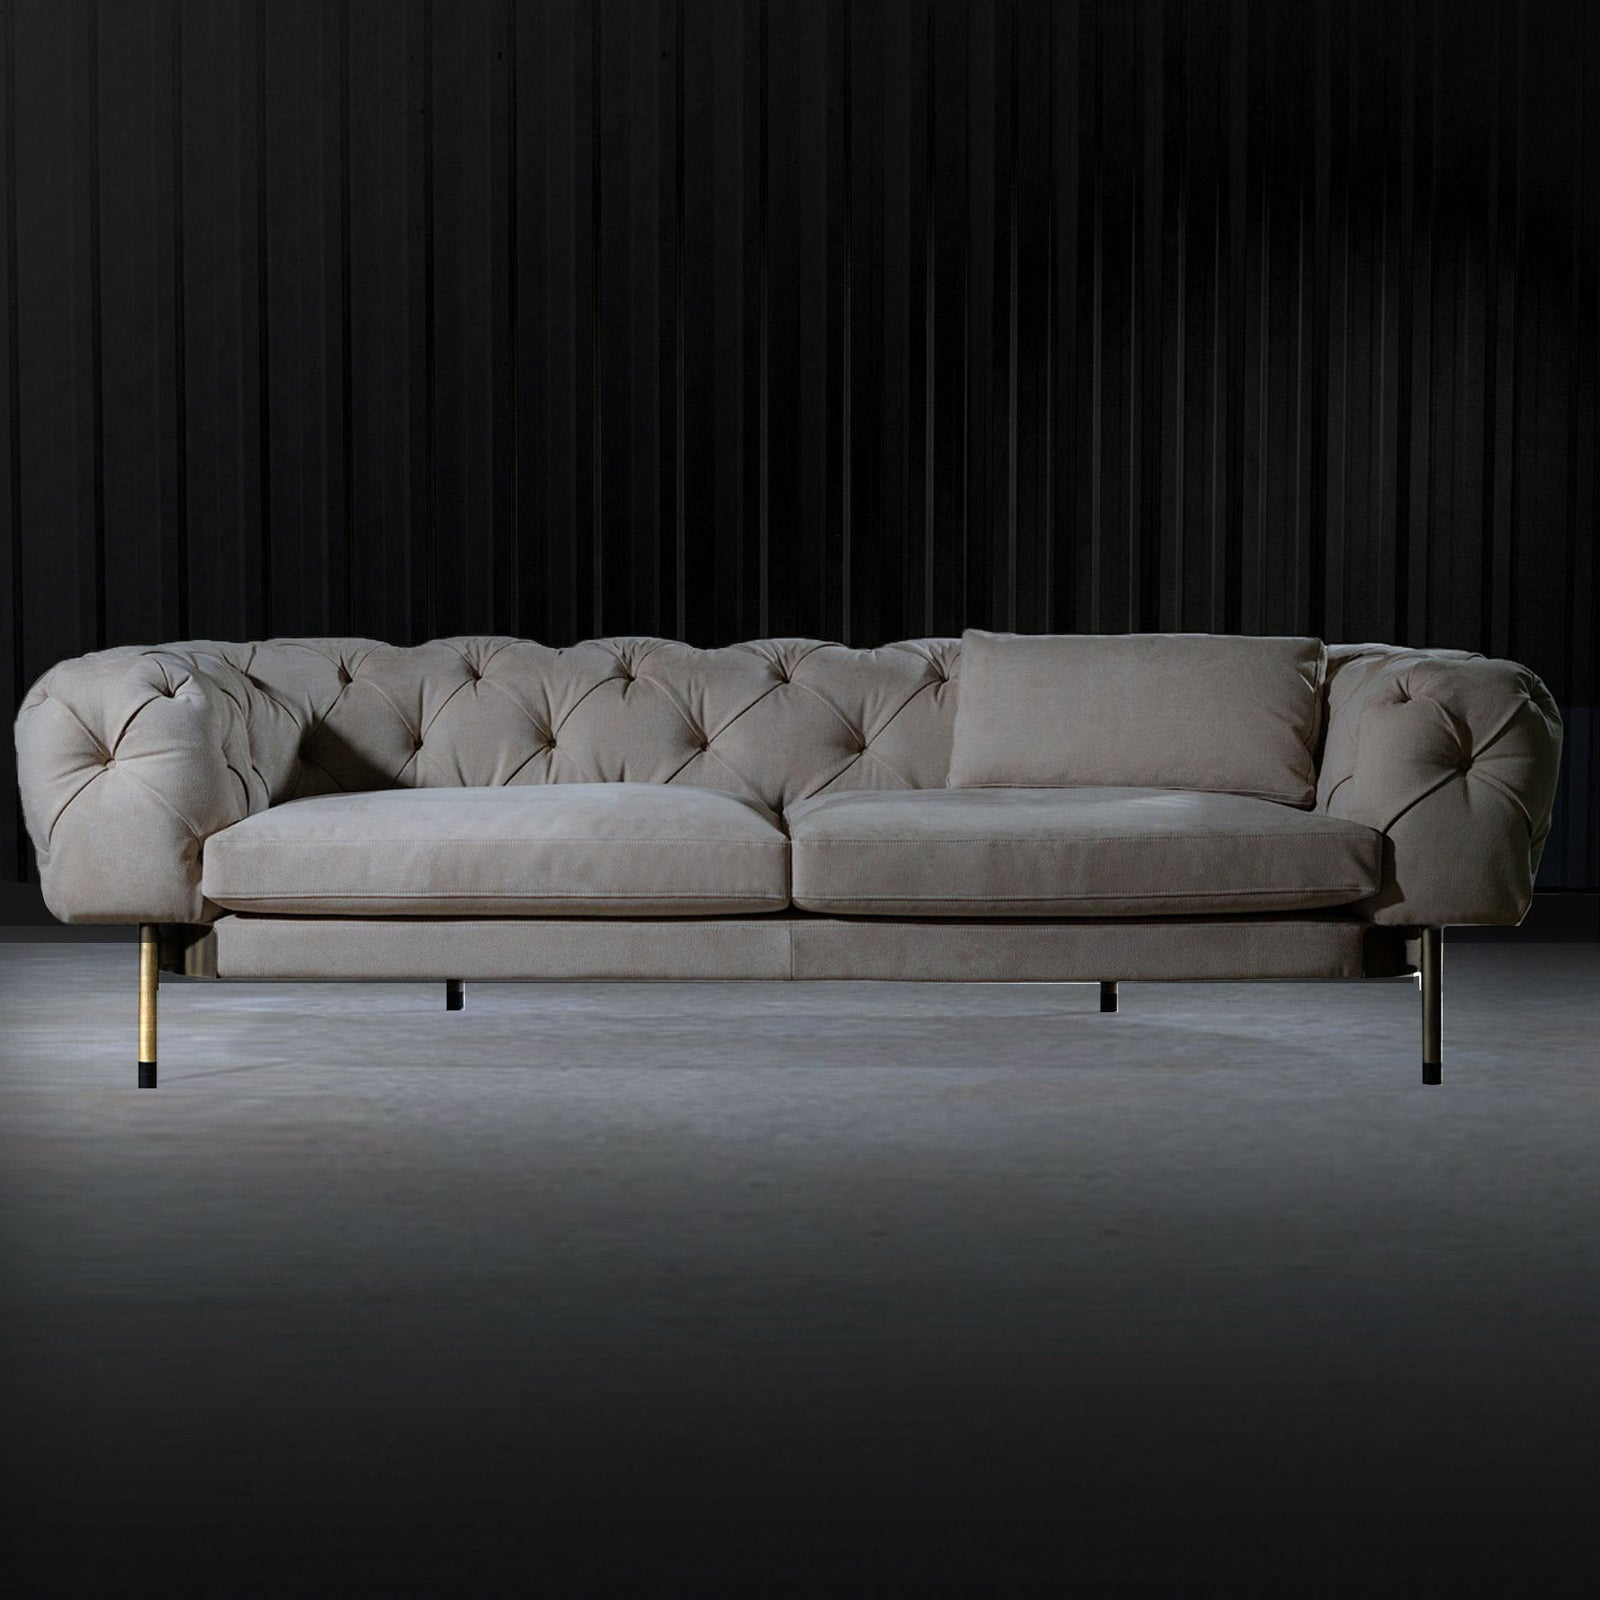 Ebarza Online Furniture Stores UAE Modern Sofa